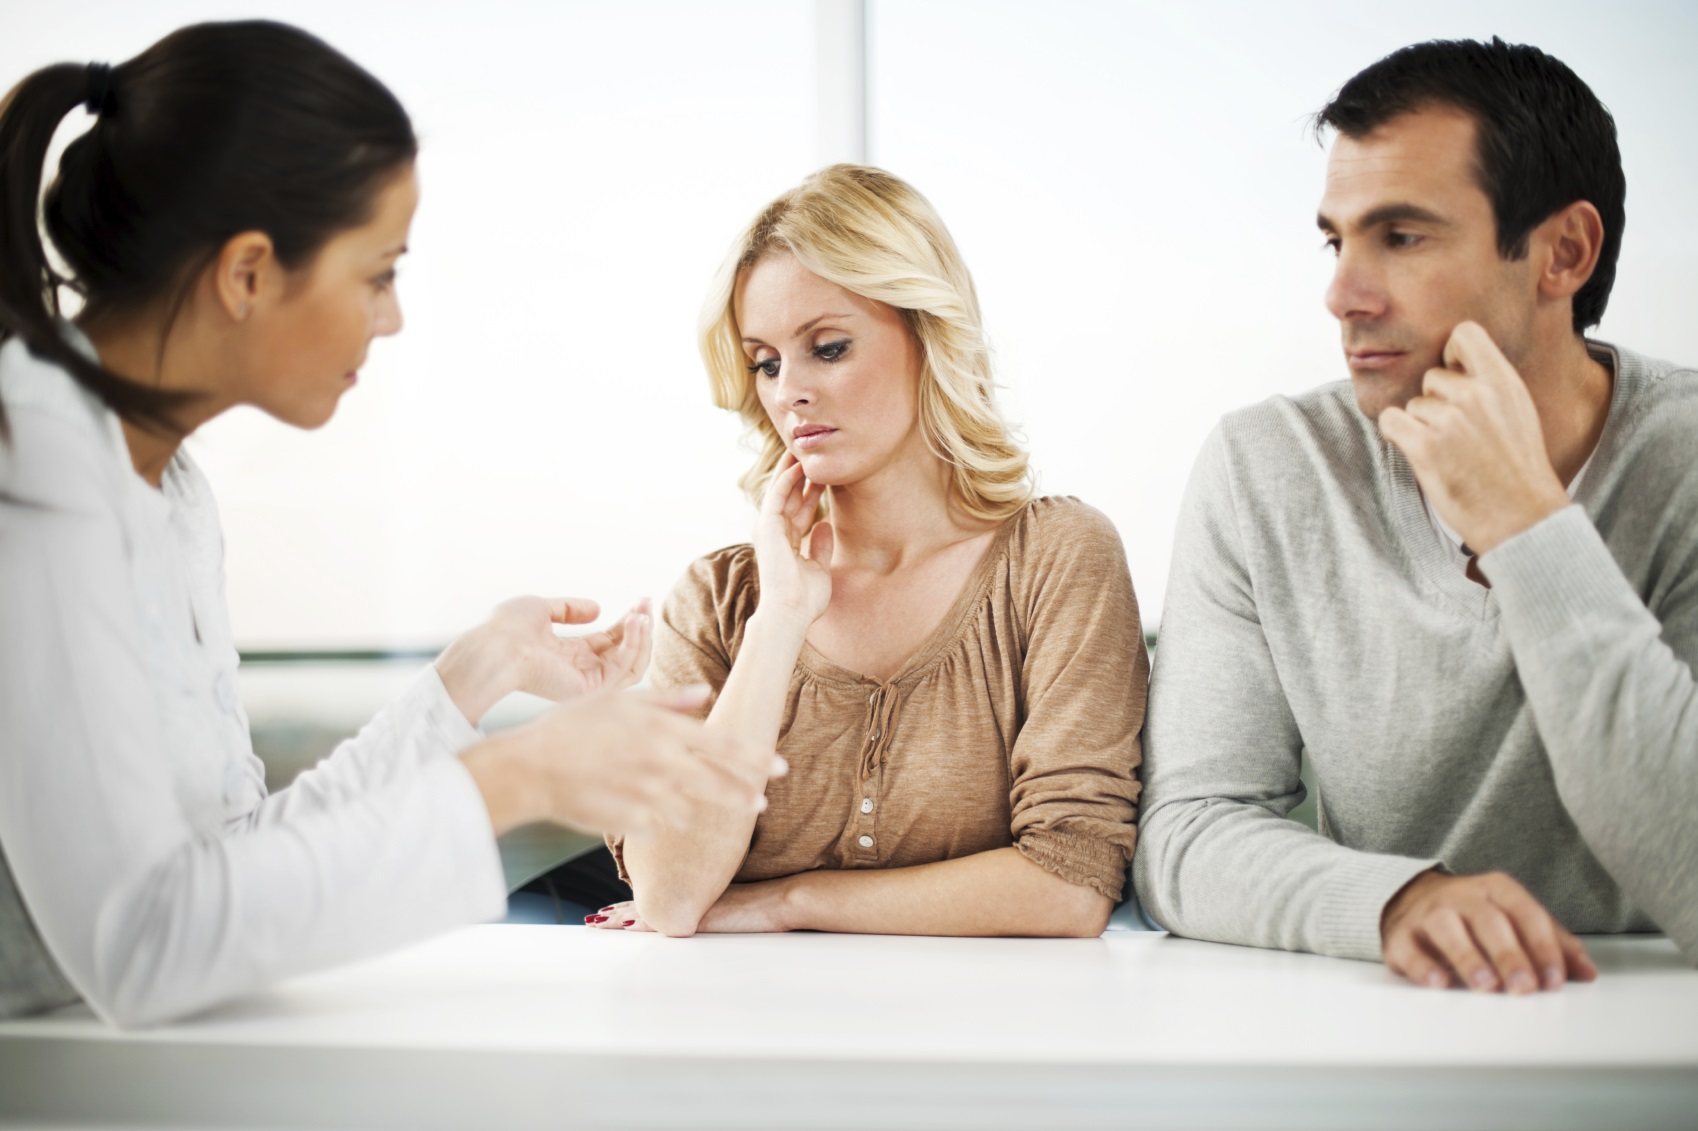 13 Signs You Need Marriage Counseling